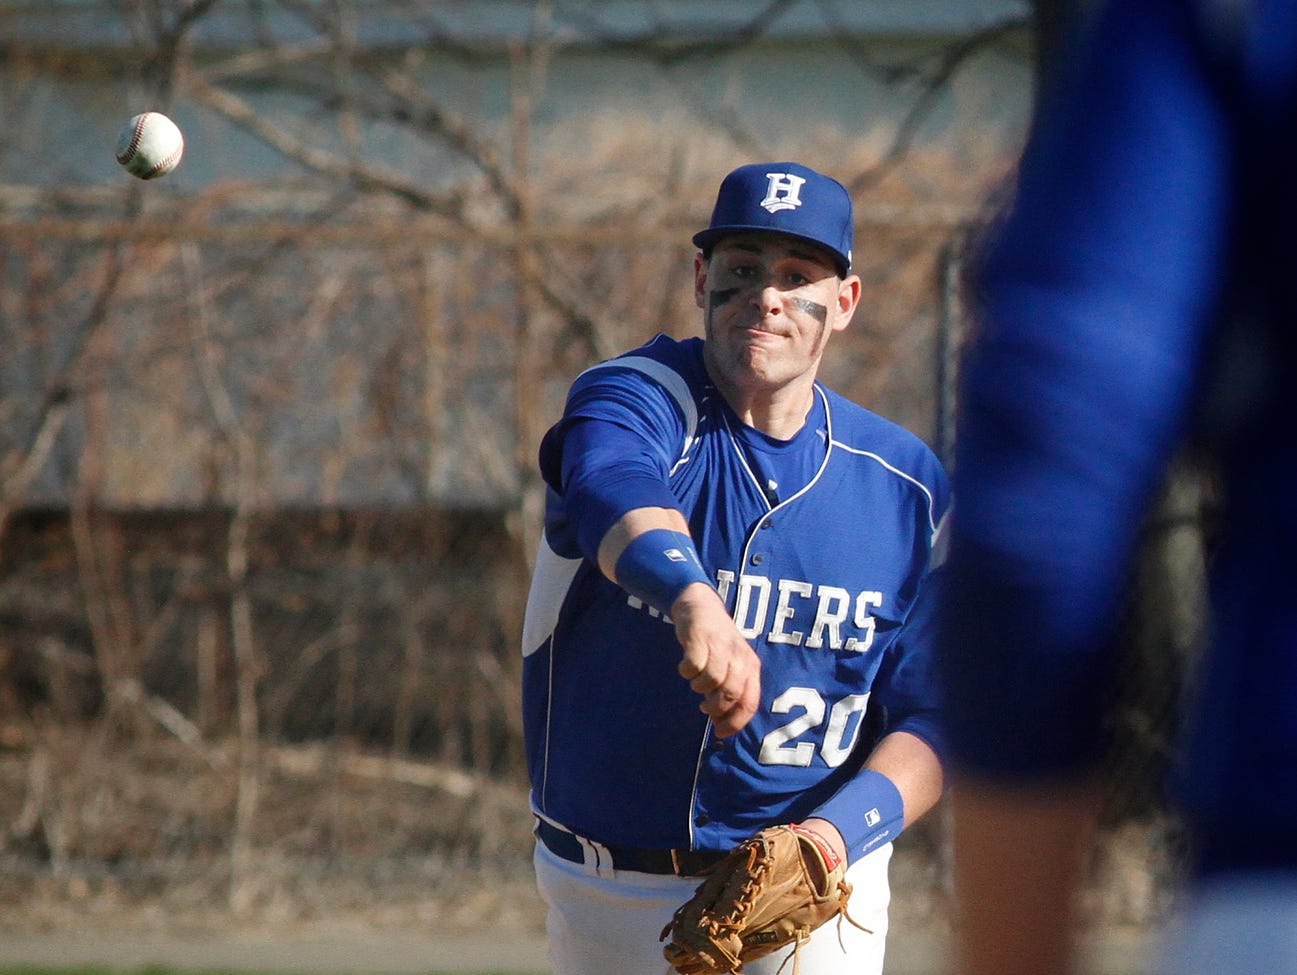 Horseheads' Josh Stowell throws to first baseman Austin Ross on Wednesday against Binghamton. Stowell homered in Horseheads' 11-3 win.